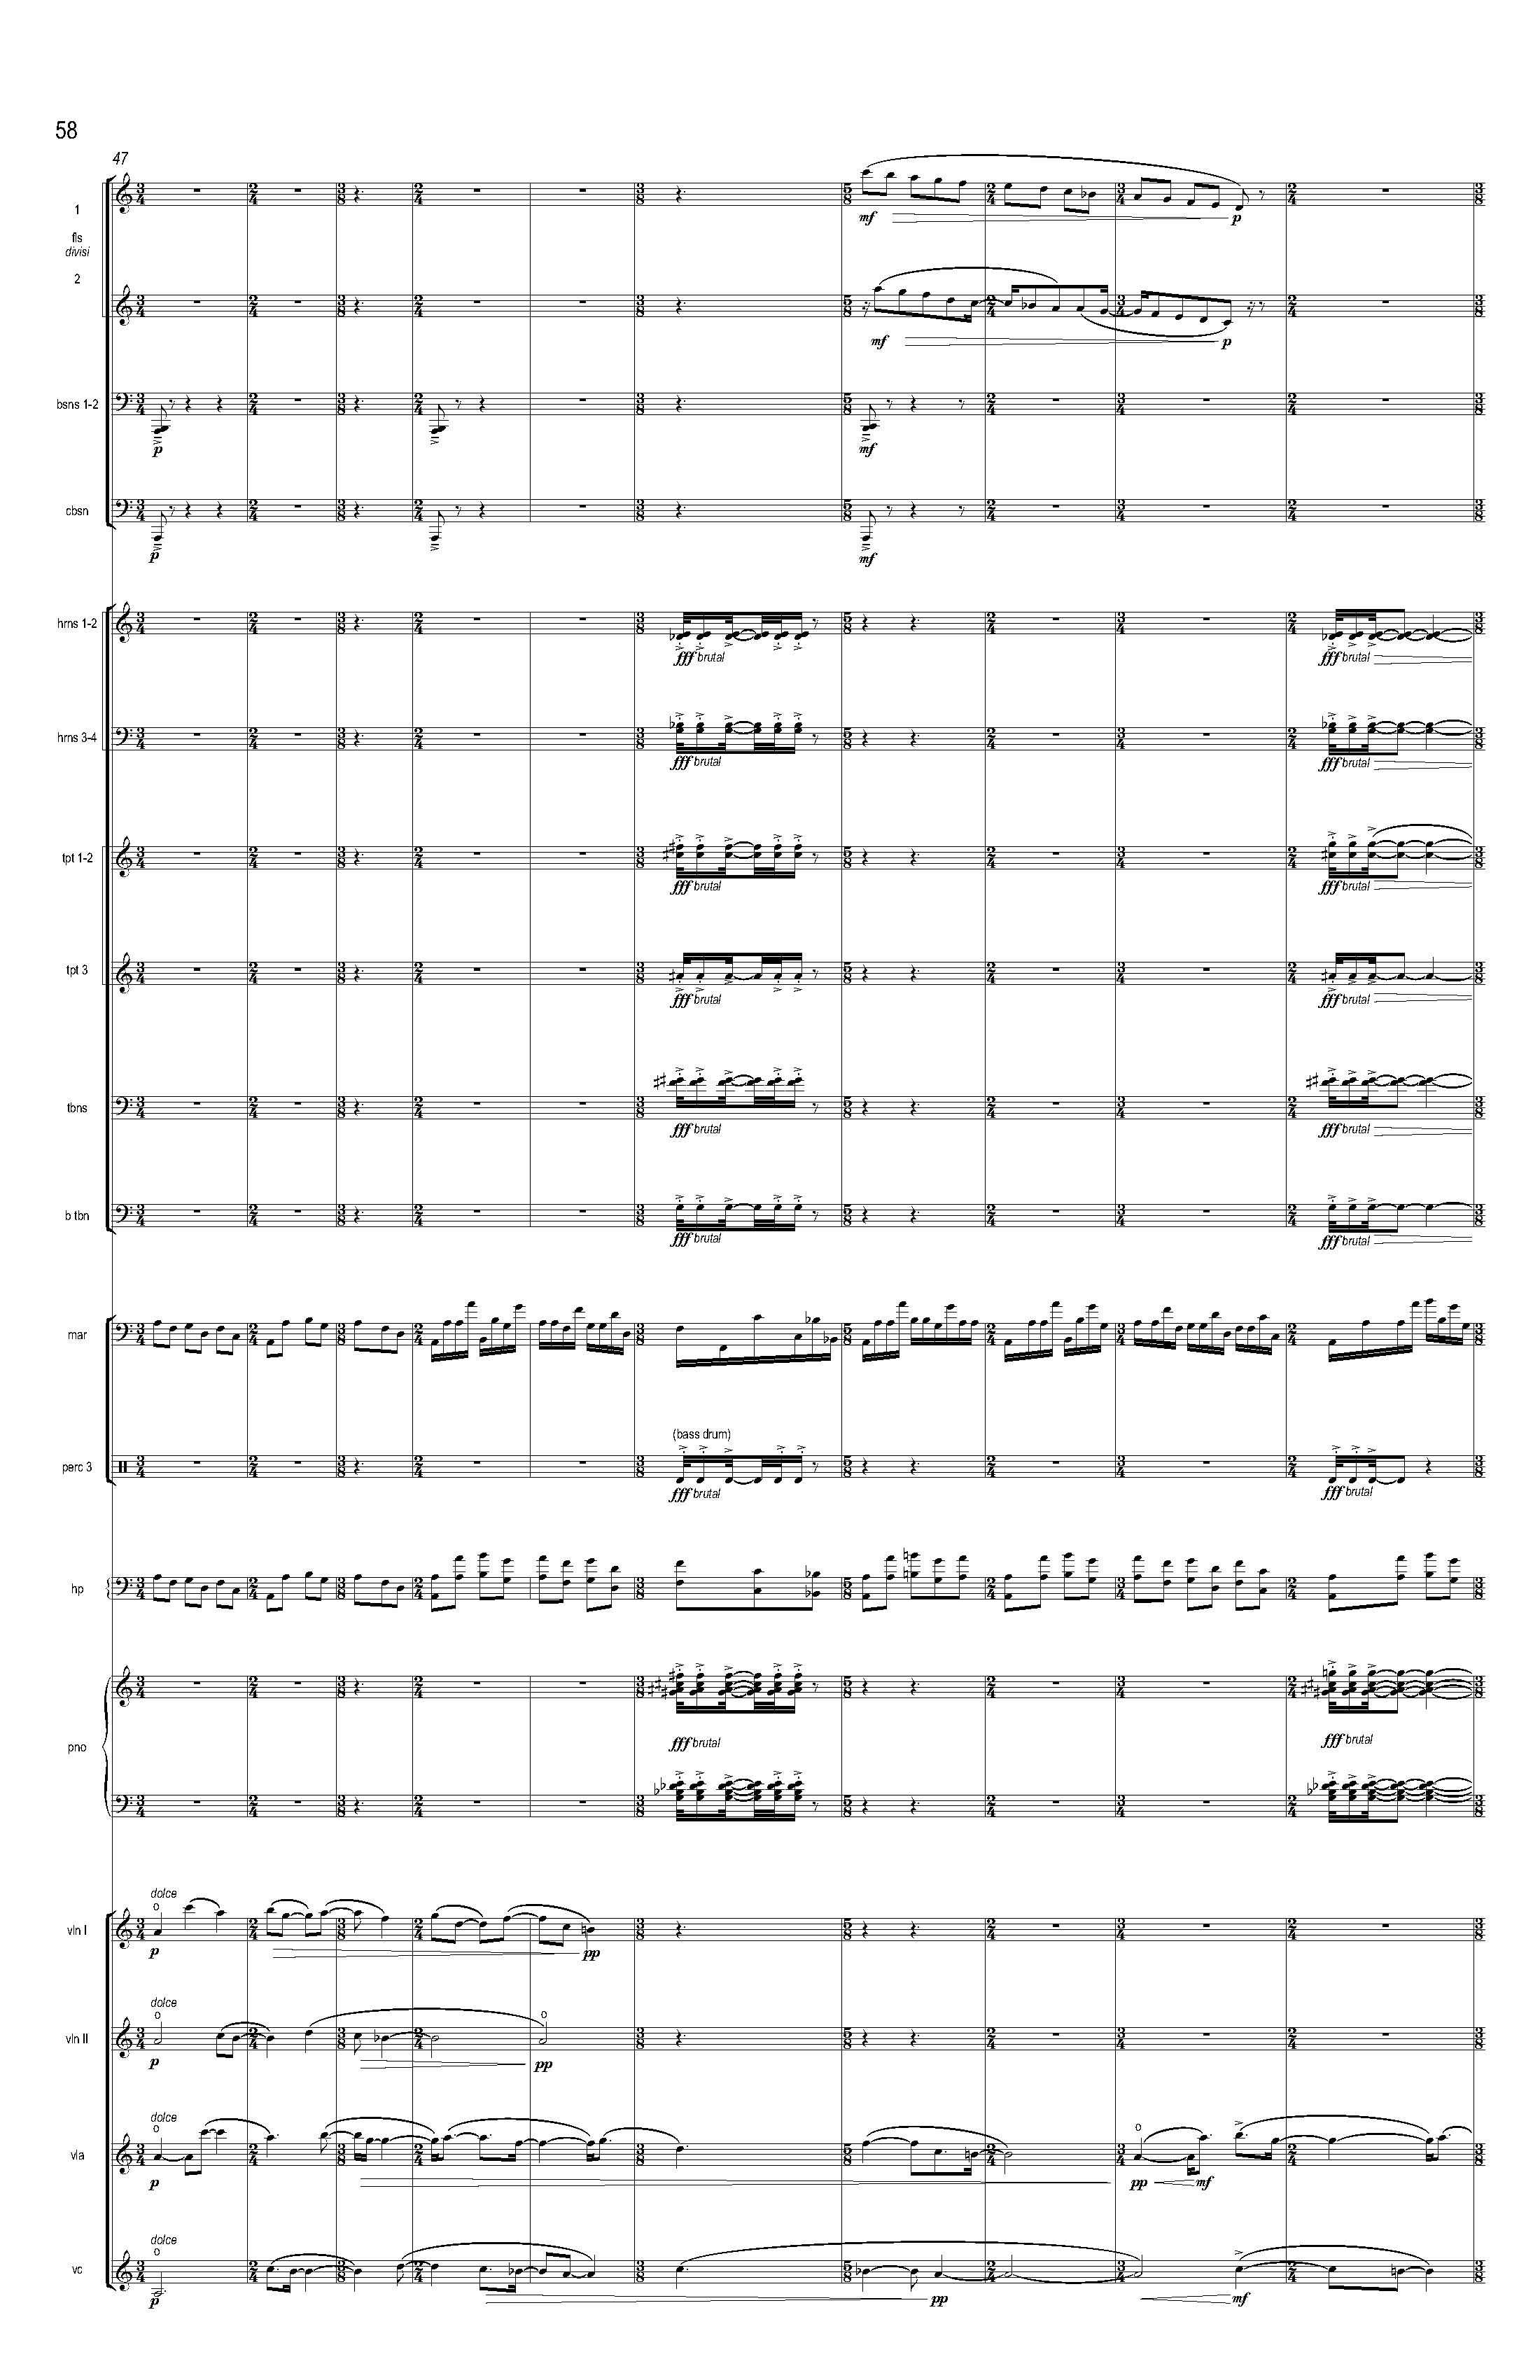 Ciach_Collective Uncommon REVISED_Full Score (Feb 2017)_Seite_64.jpg